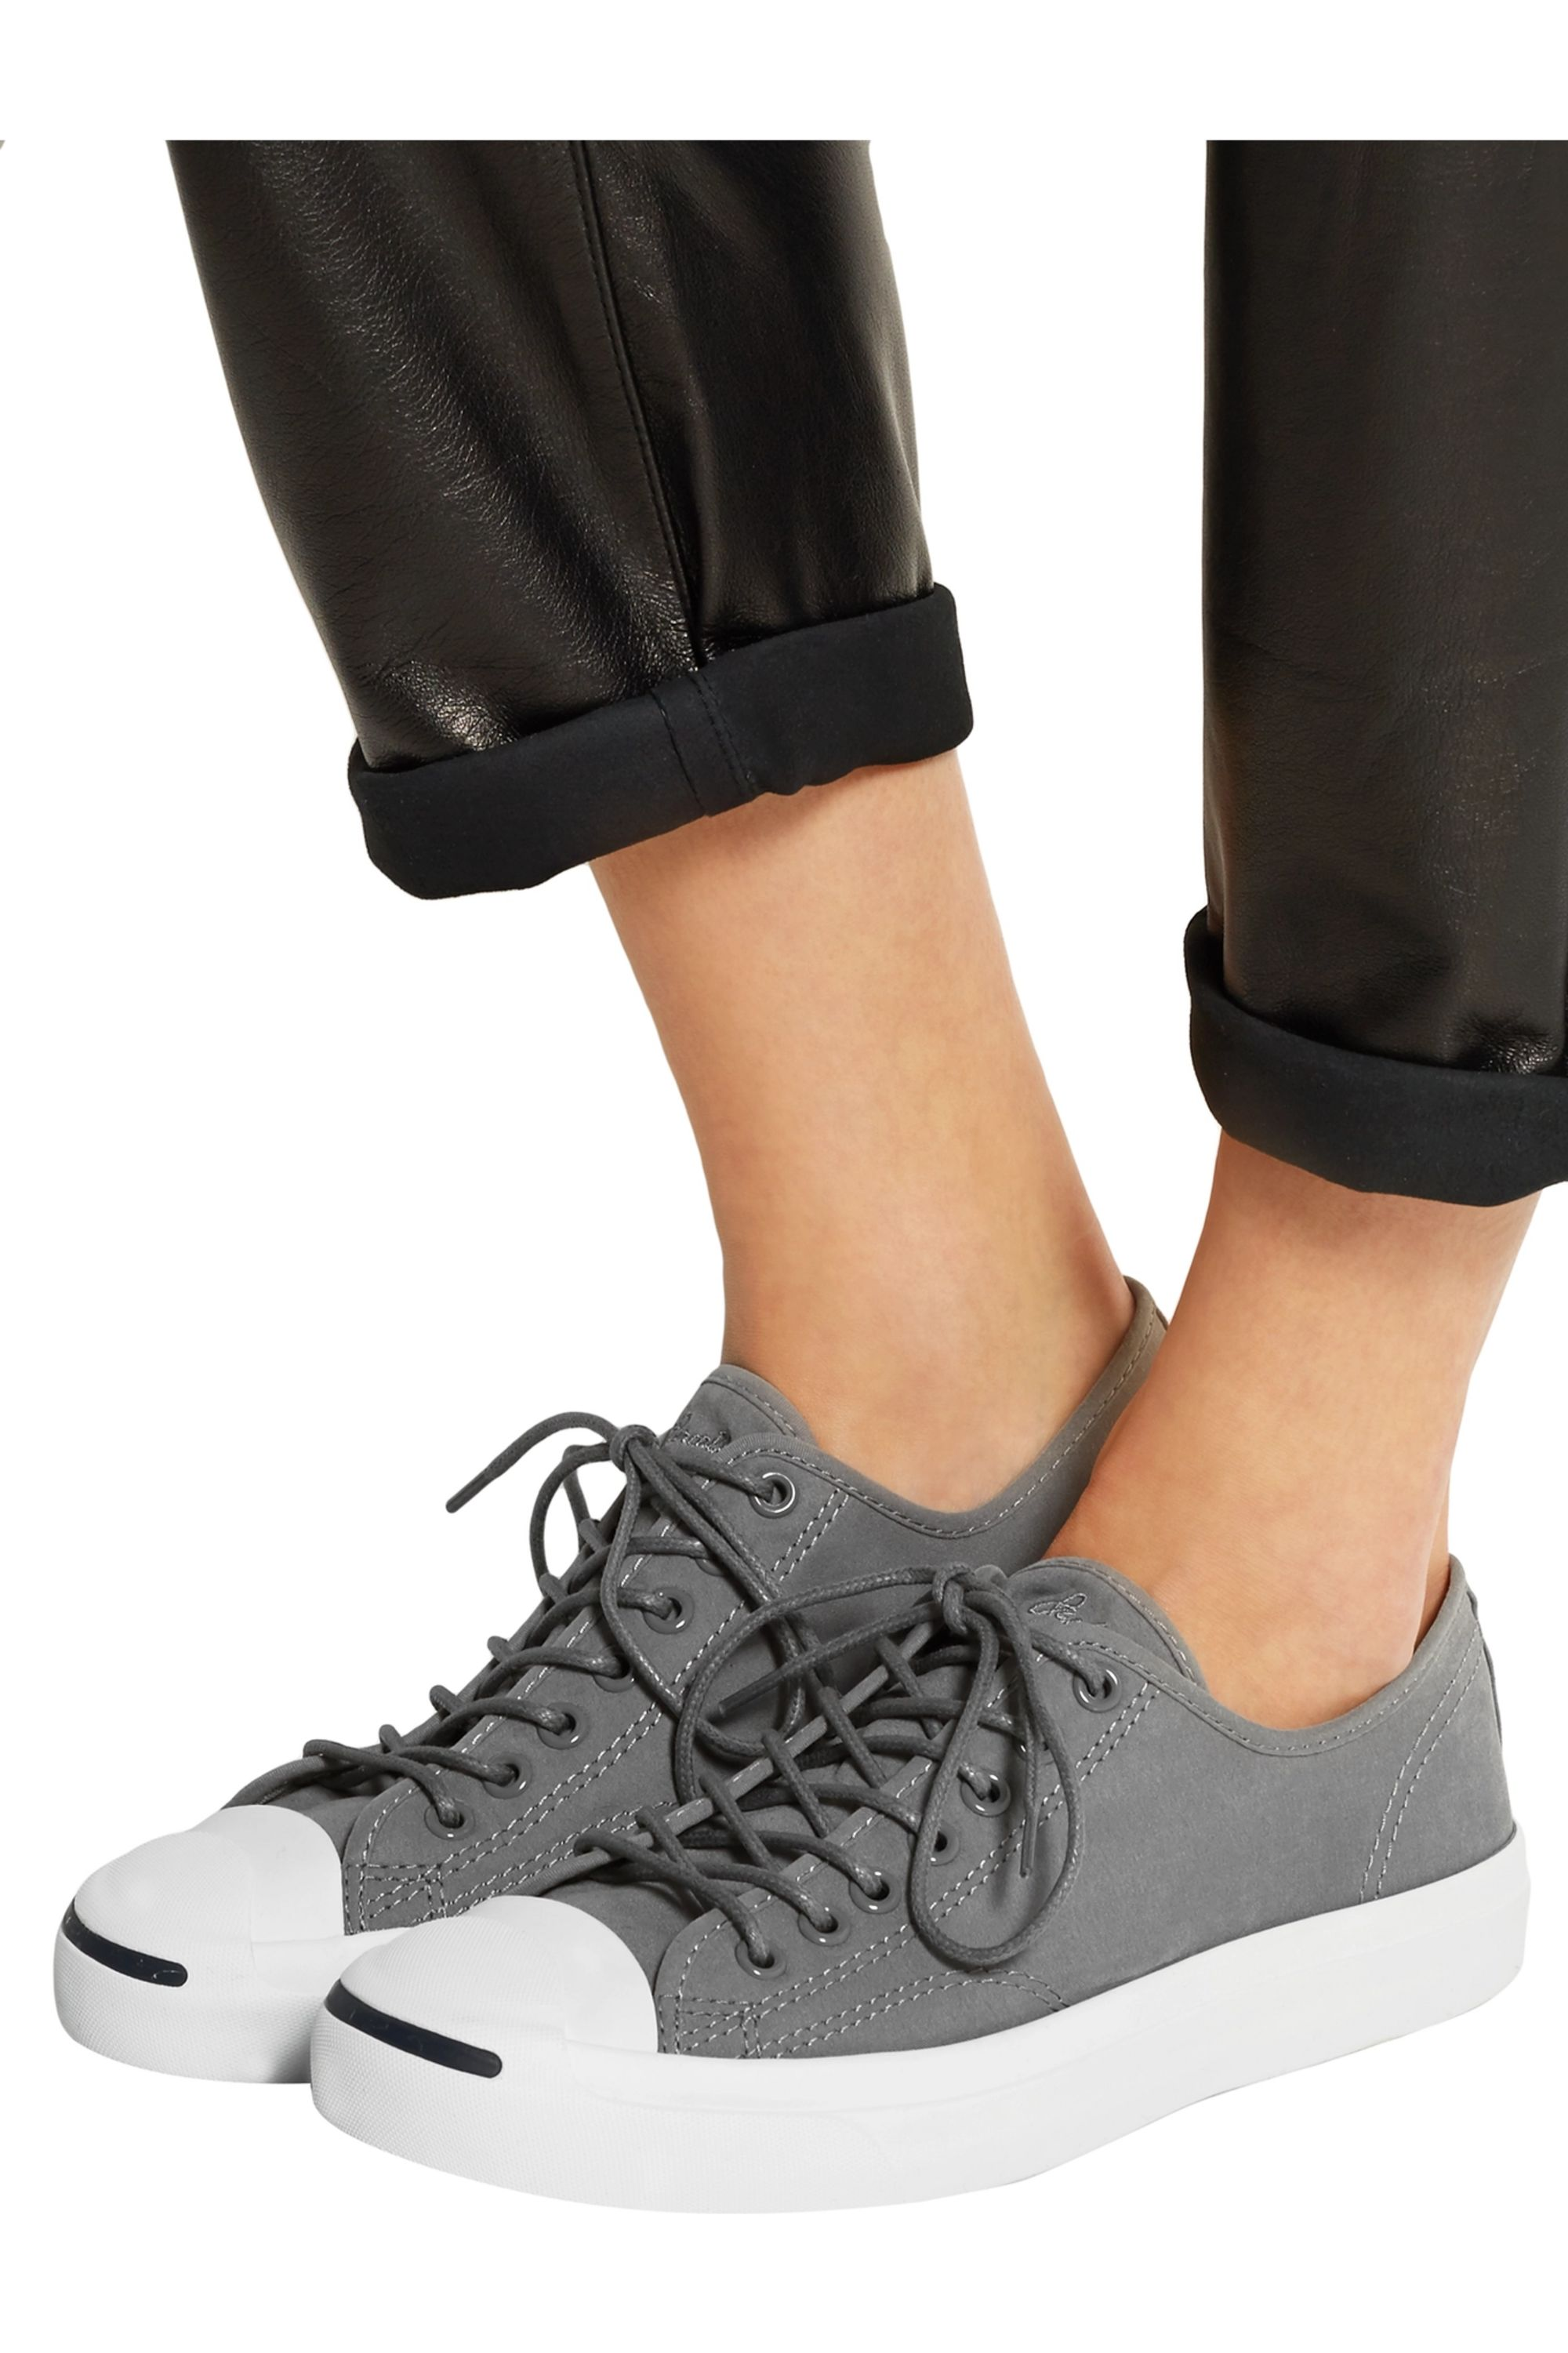 Gray Jack Purcell canvas sneakers